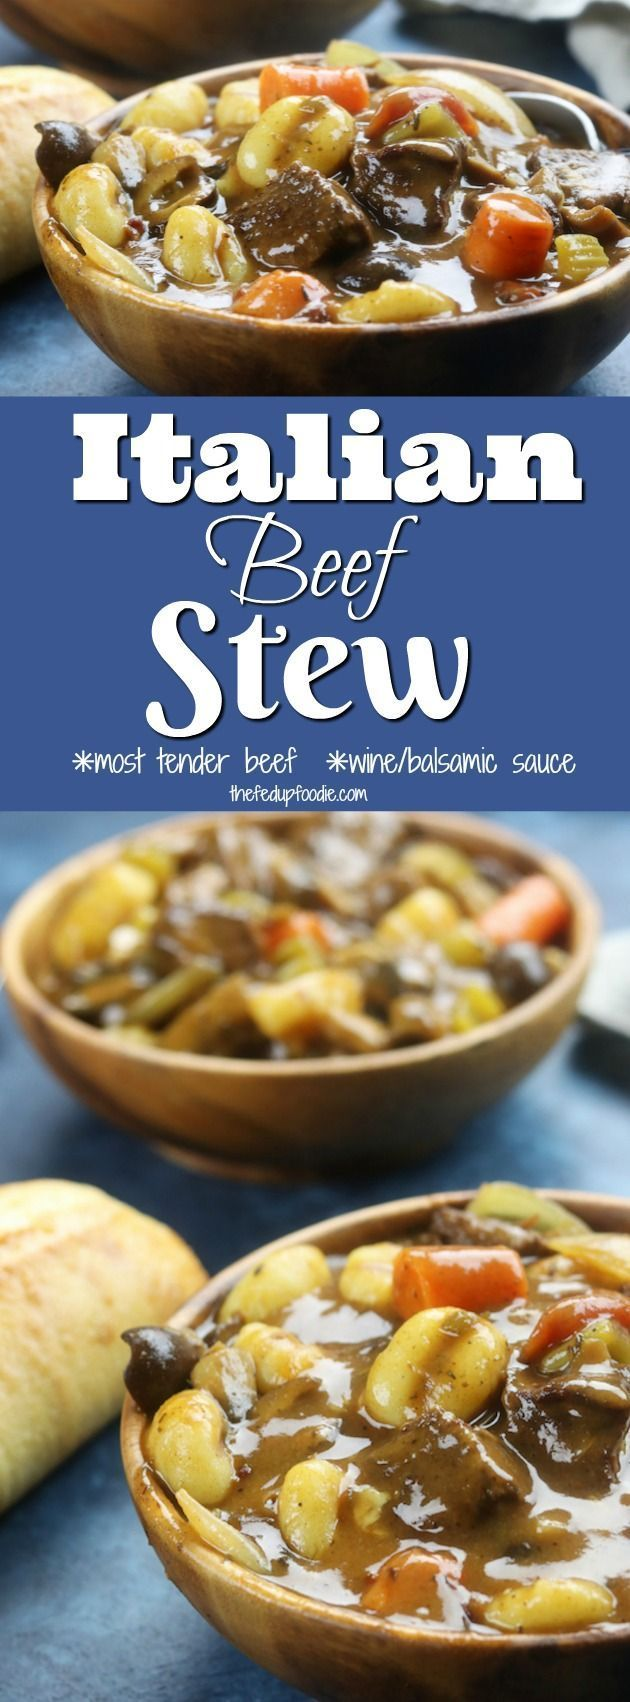 Italian Beef Stew recipe has melt in your mouth tender beef, a rich sauce with the tastes of Italy, tender gnocchi and hearty veggies. The best comfort meal on chilly days and a favorite for family meals. https://www.thefedupfoodie.com